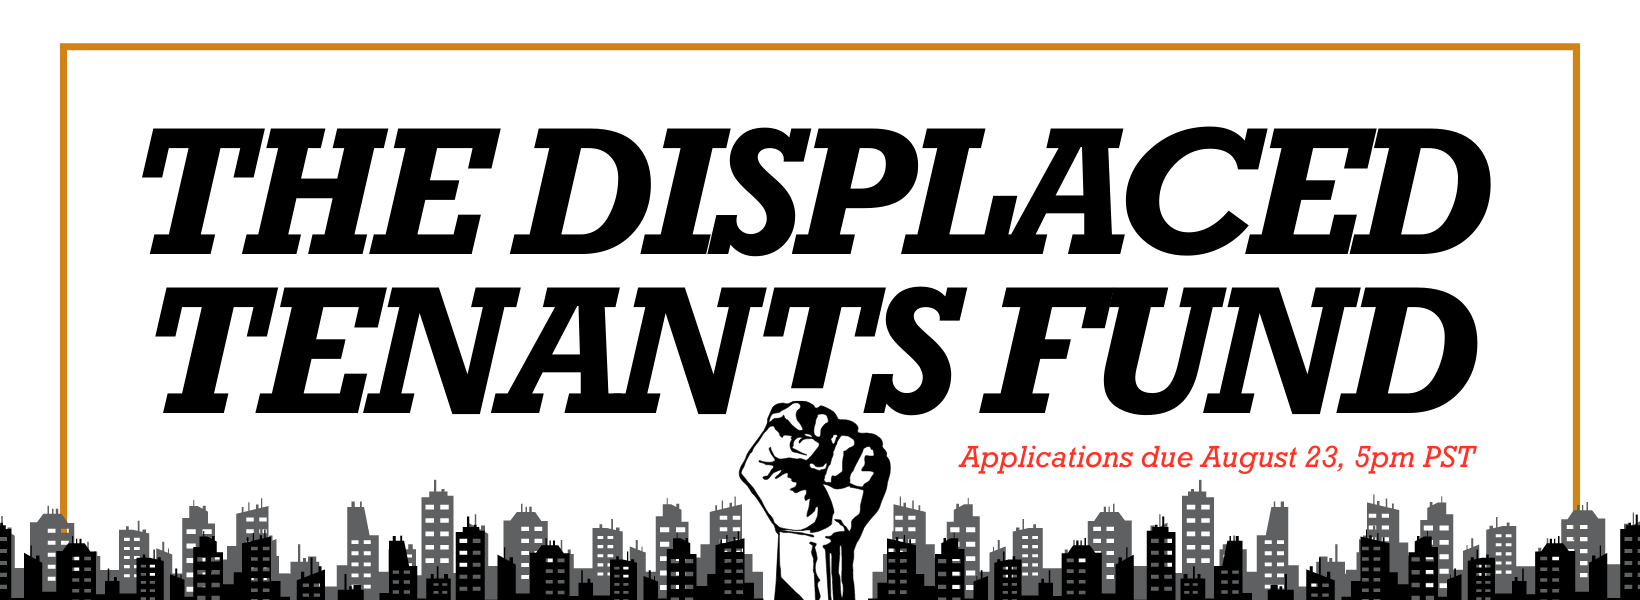 Rectangular banner with white background. There is a grey and black city skyline across the bottom with a black and white fist raising up from the center in protest. Text reads The Displaced Tenants Fund.